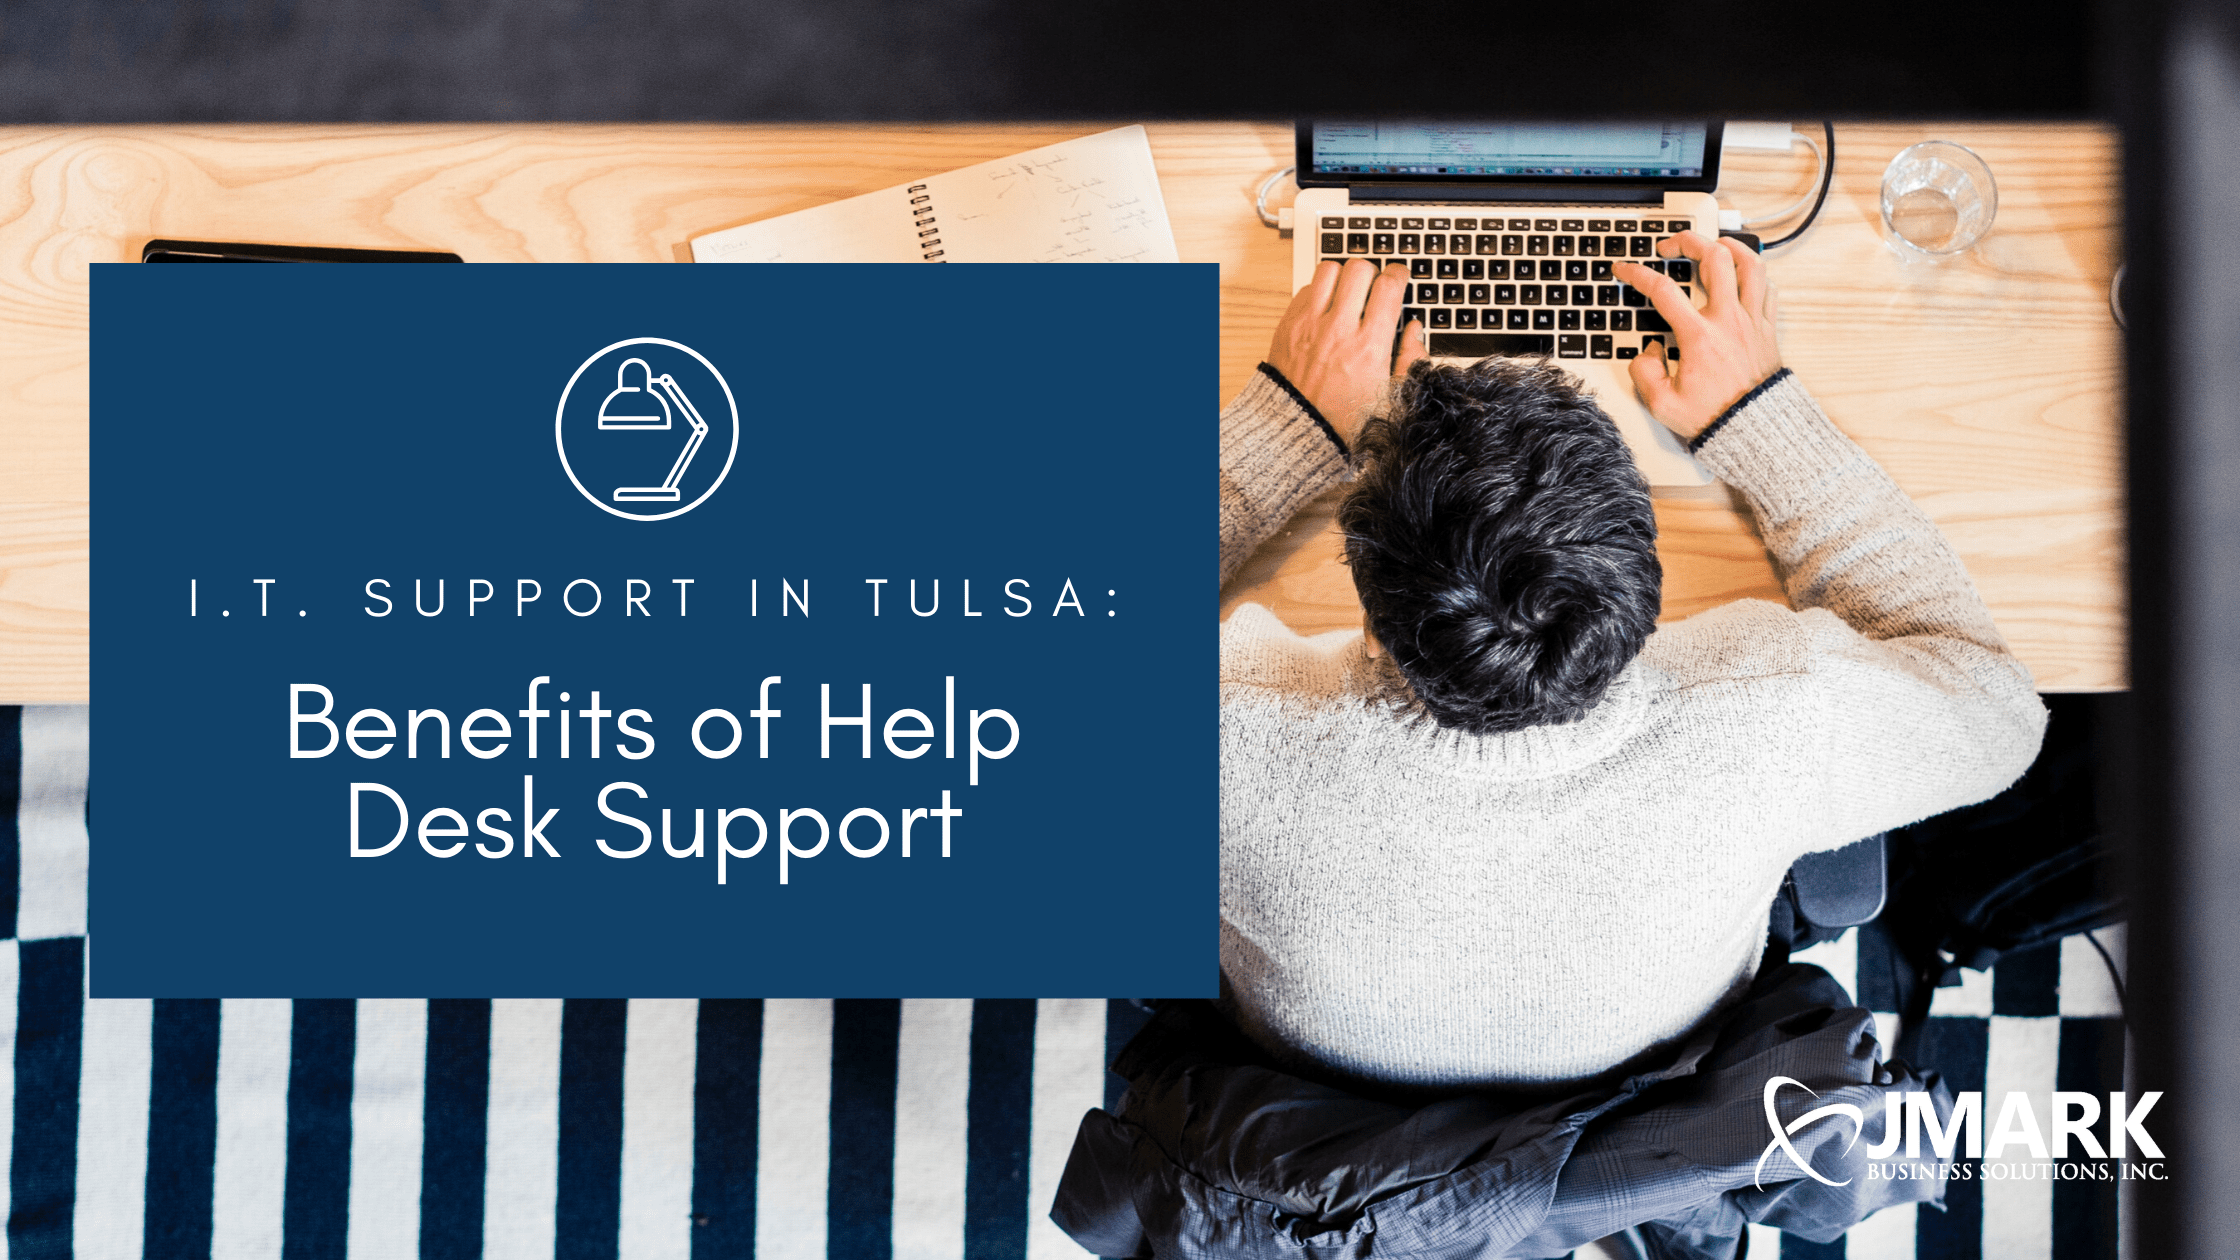 I.T. Support in Tulsa: Benefits of Help Desk Support